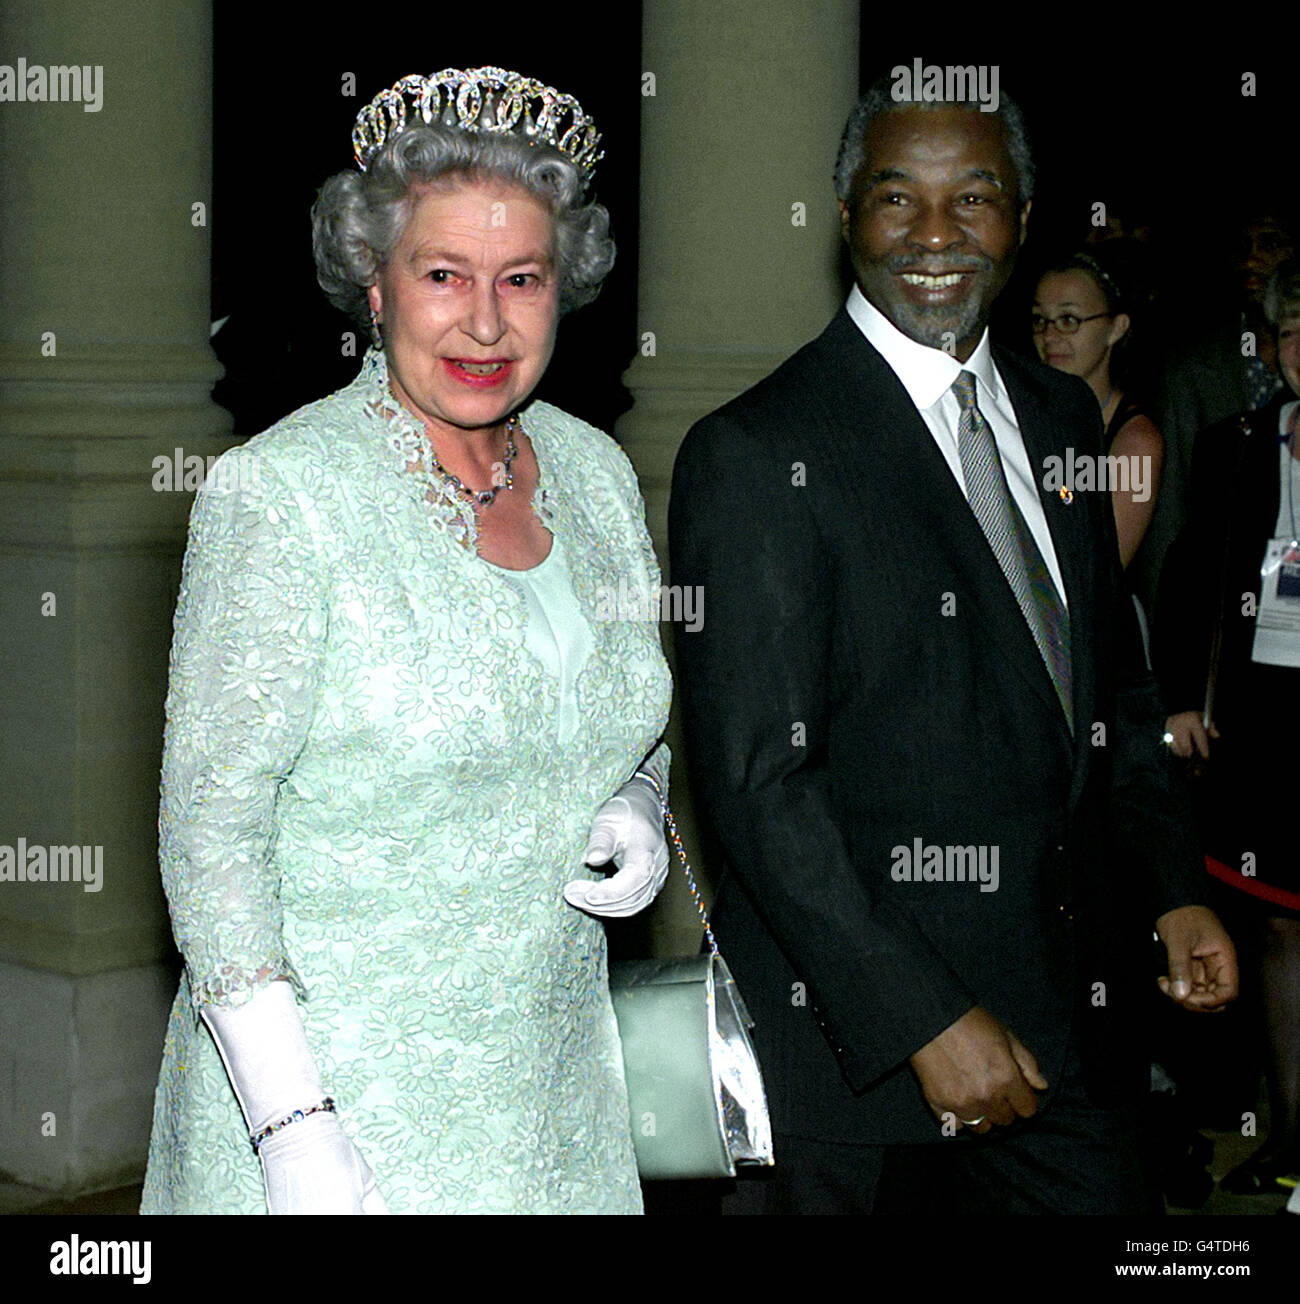 Royalty - Queen Elizabeth II Visit to South Africa - Stock Image